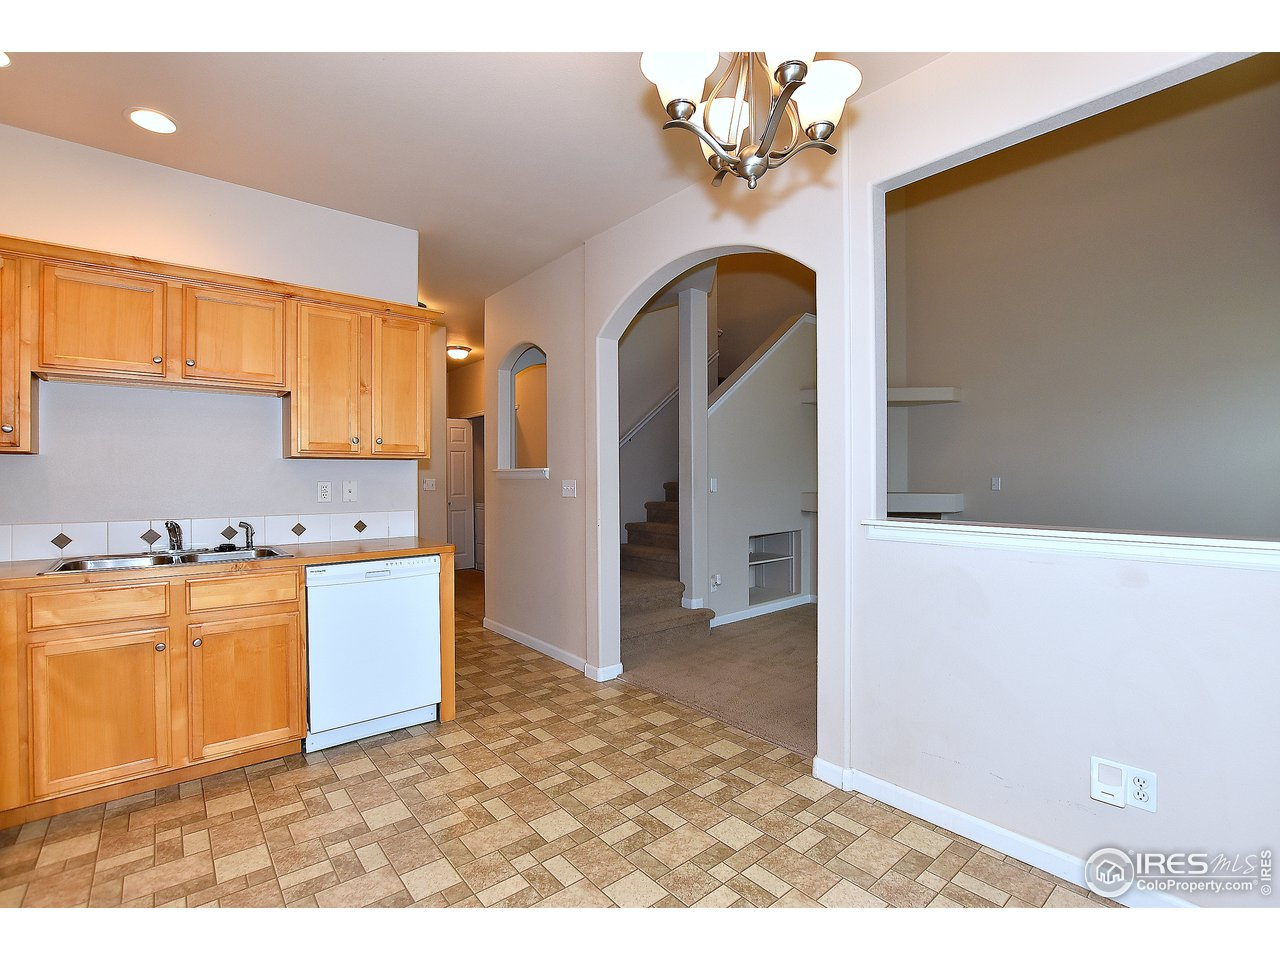 Expansive kitchen open to great room